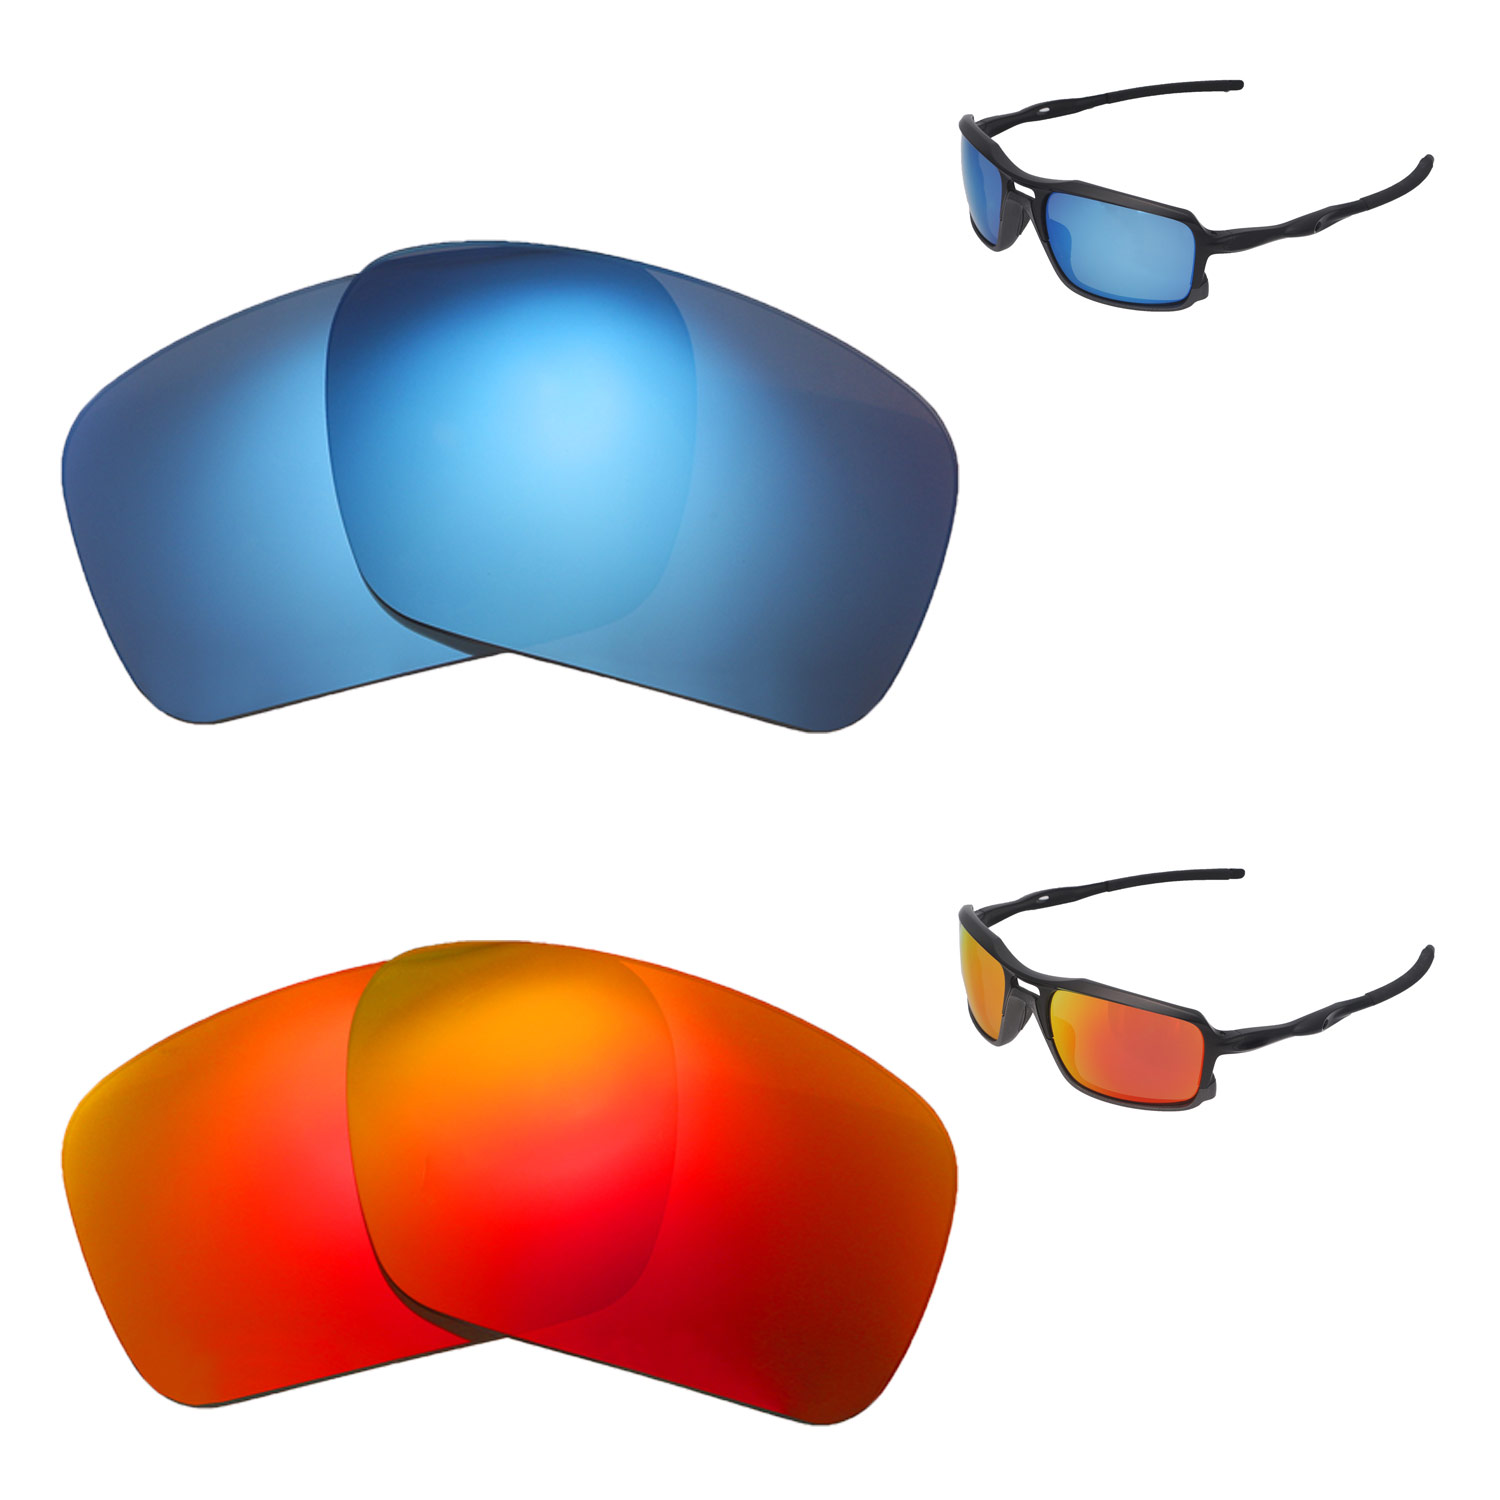 d9f054eb63 Details about Walleva Fire Red + Ice Blue Polarized Replacement Lenses For  Oakley Triggerman